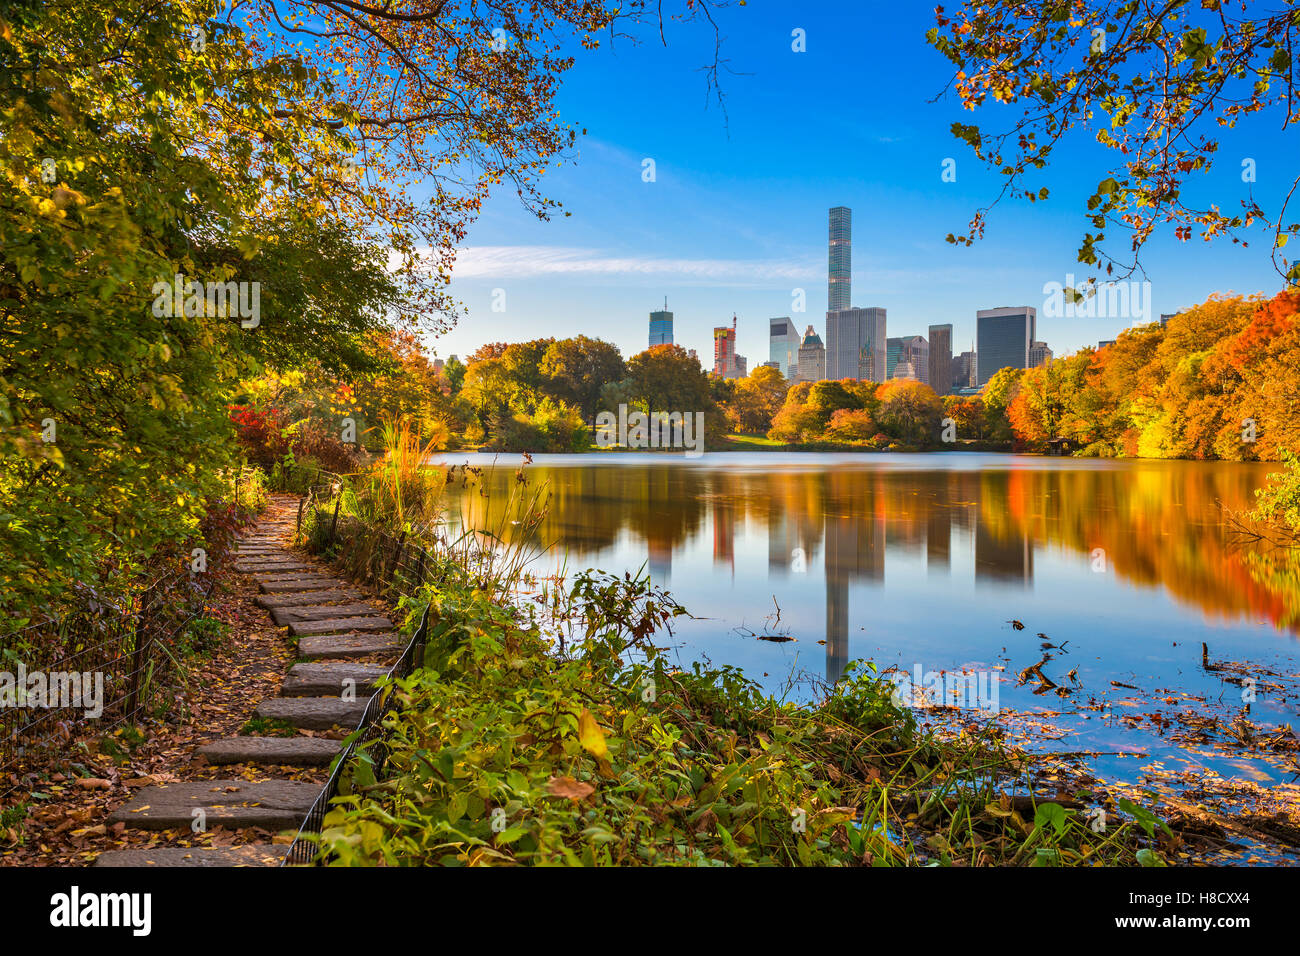 Central Park during autumn in New York City. - Stock Image